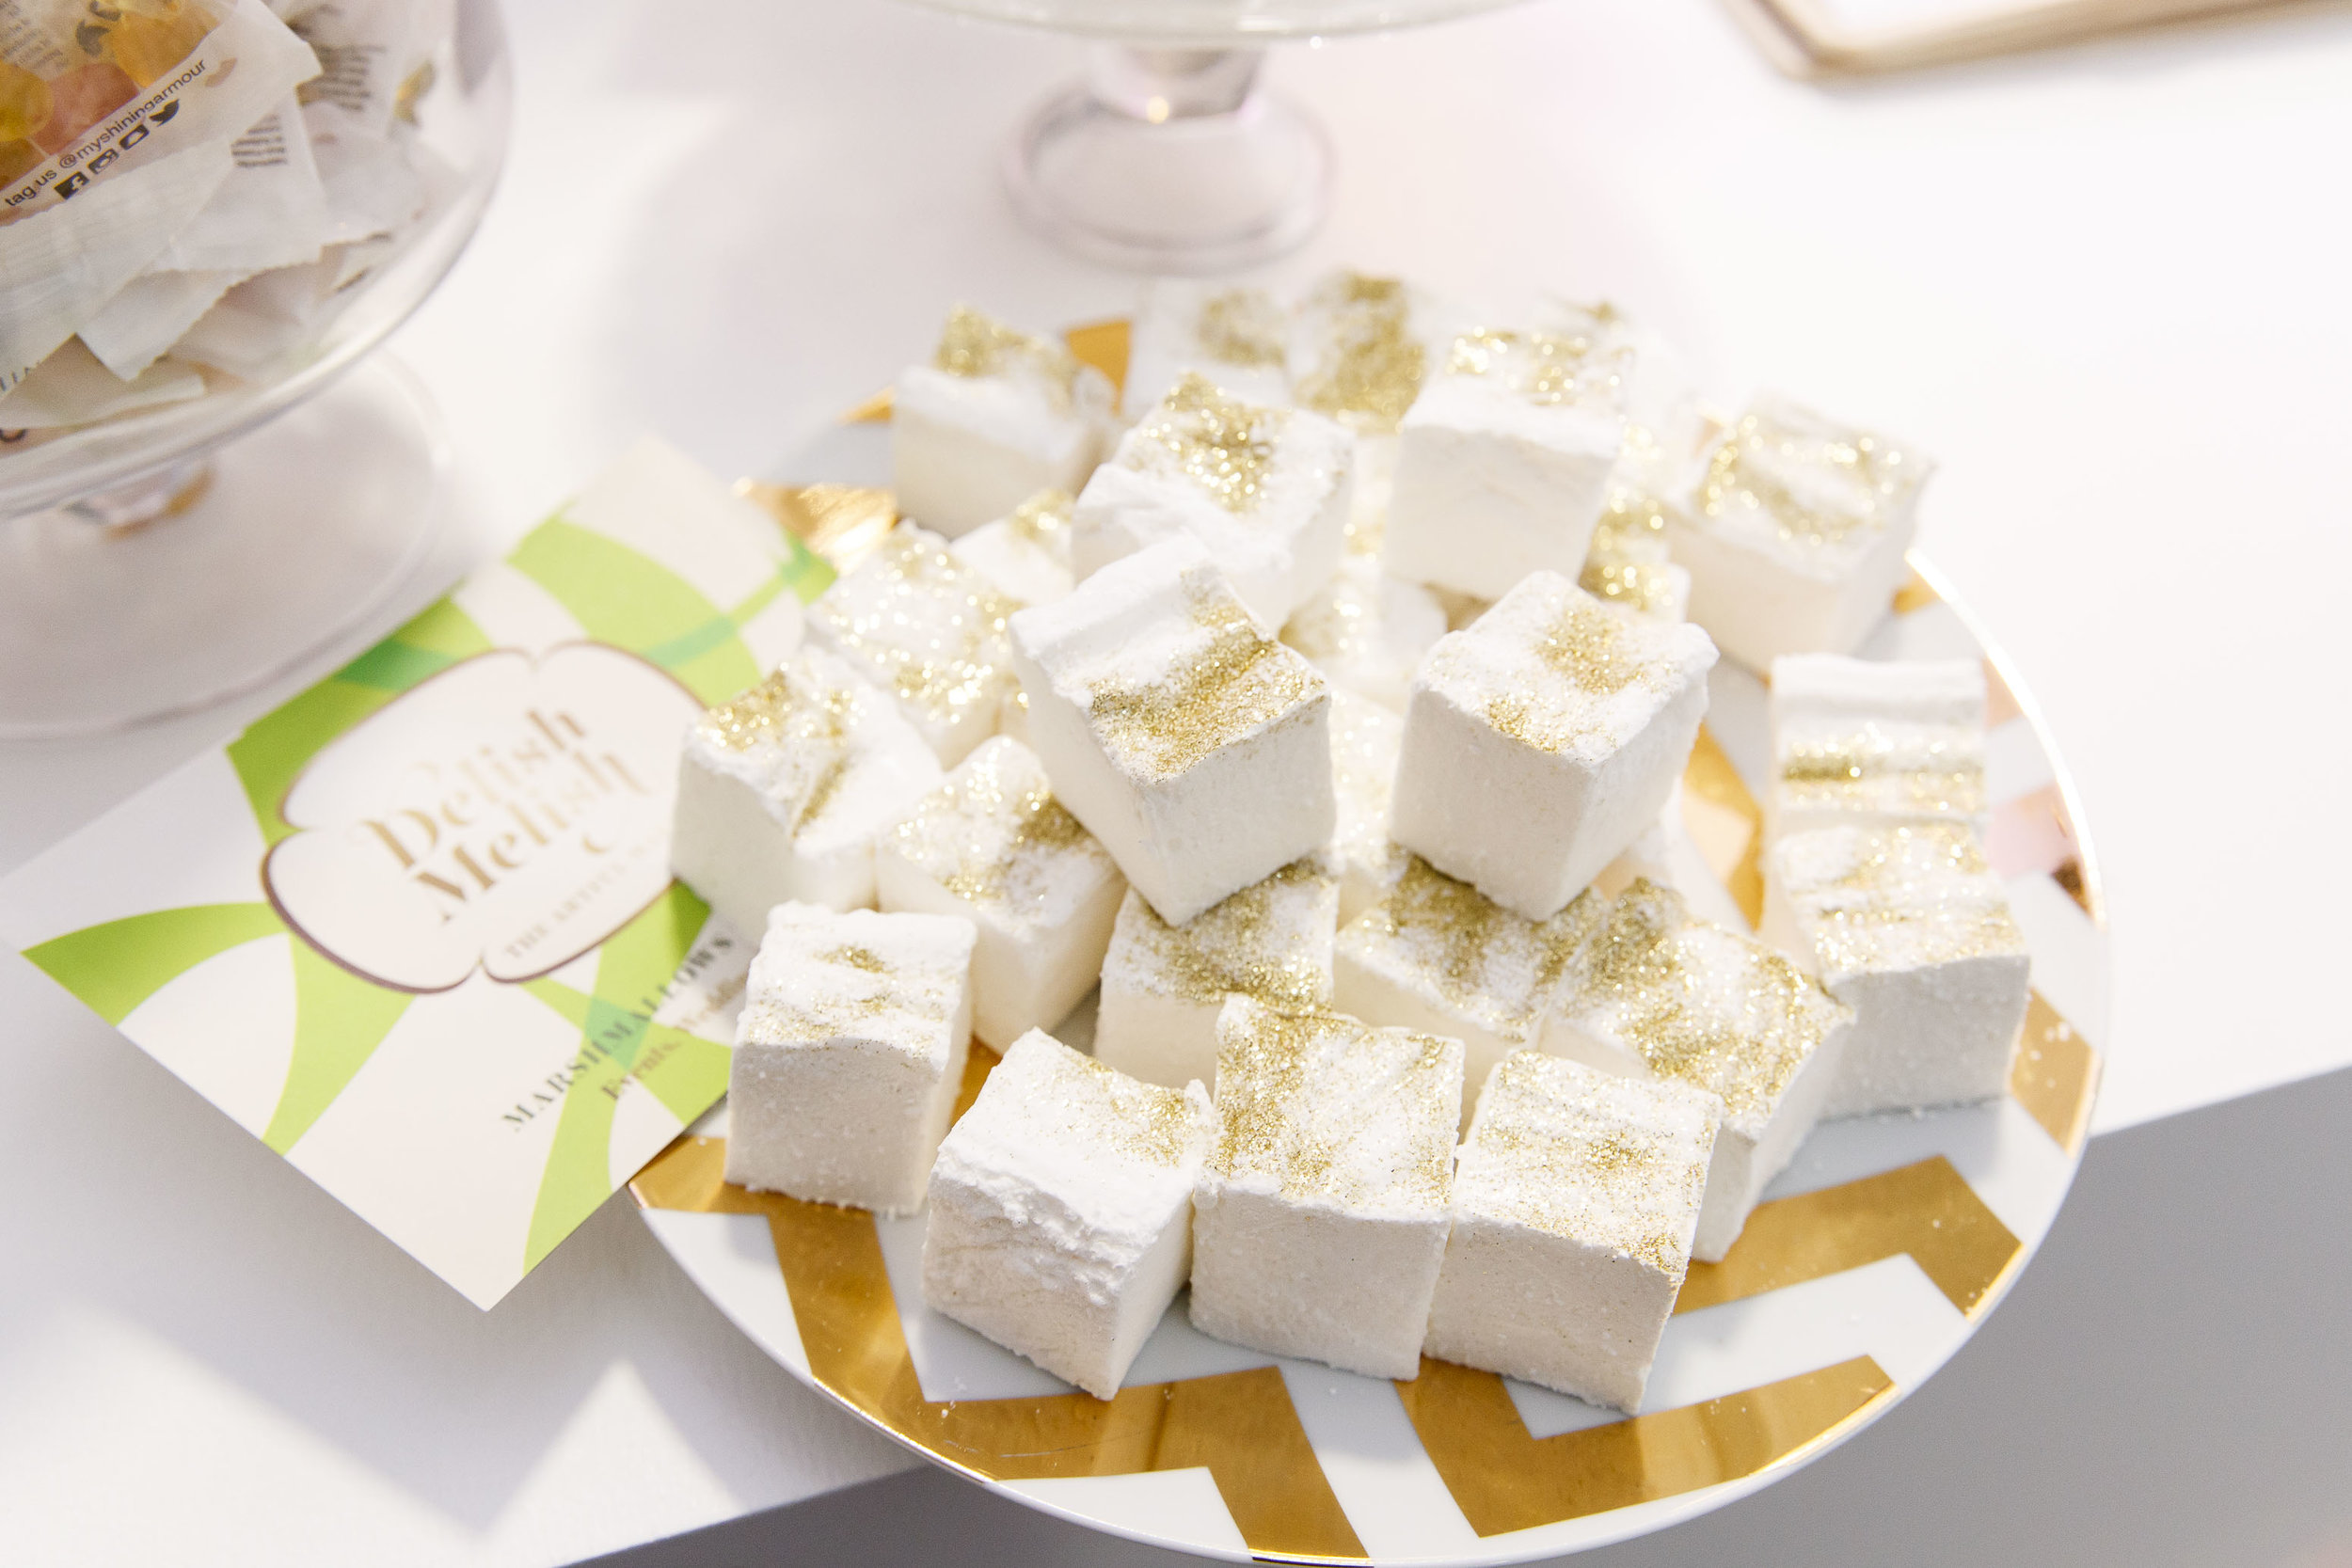 Our vanilla bean marshmallows topped with edible gold dust. Pic by  Andres Poveda